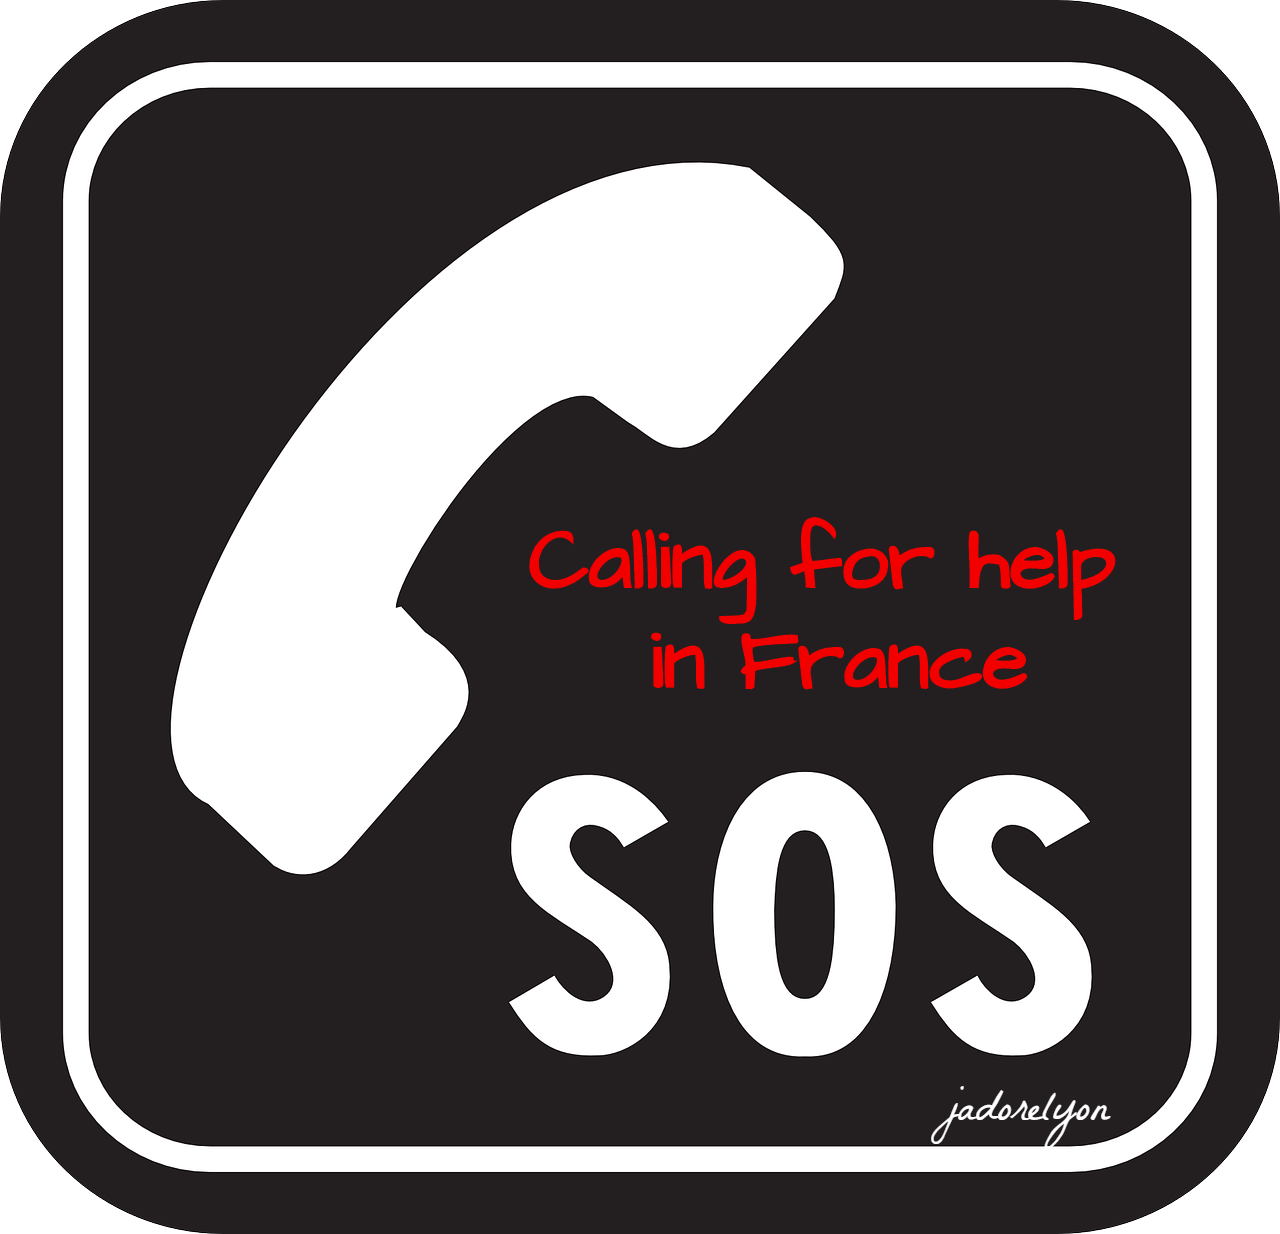 Calling for help in France